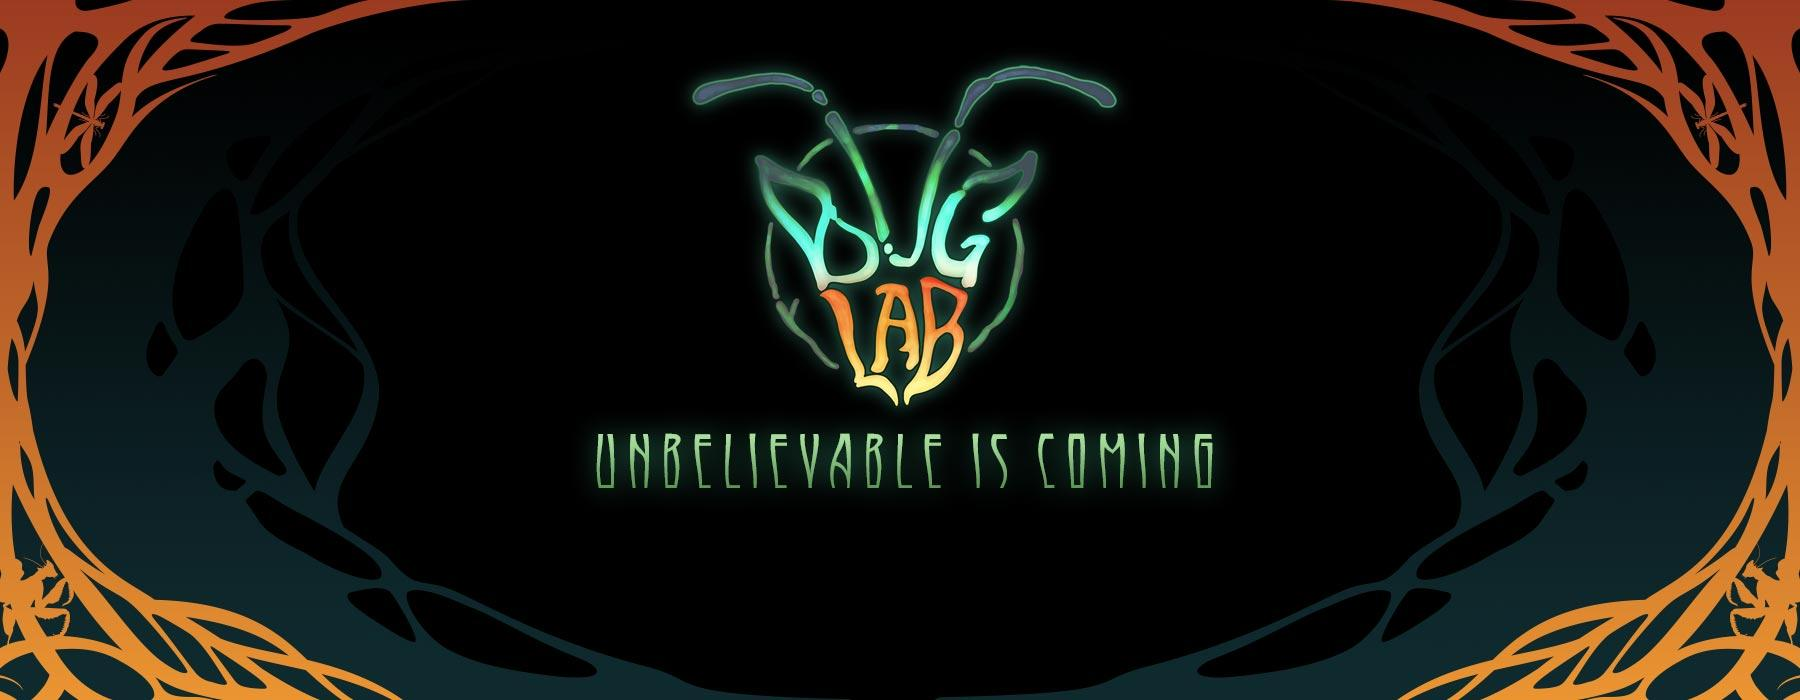 A logo in the shape of a bug's head reads 'Bug Lab' underneath are the words 'unbelievable is coming'.